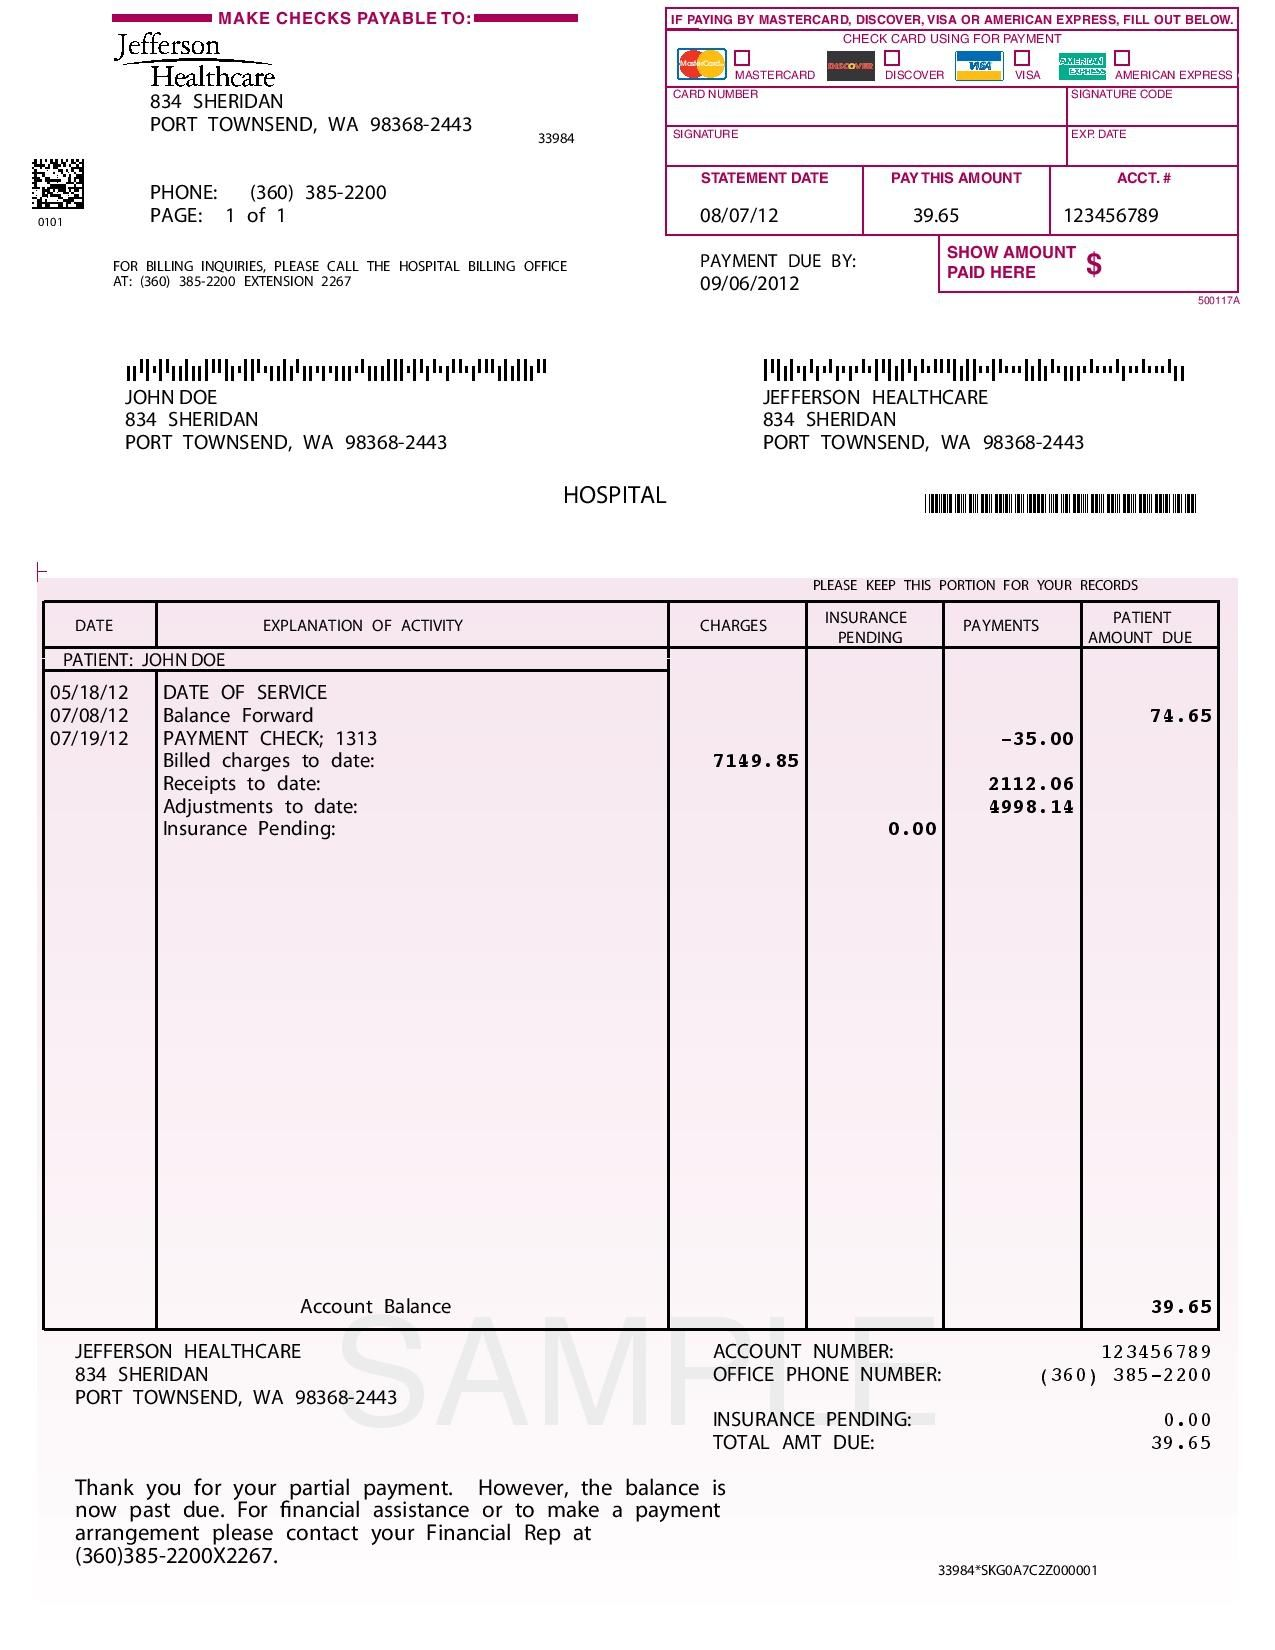 Charming 10 Best Images Of Sample Of Invoice For Payment Sample Invoice Payment  Terms On An Invoice  How To Prepare An Invoice For Payment